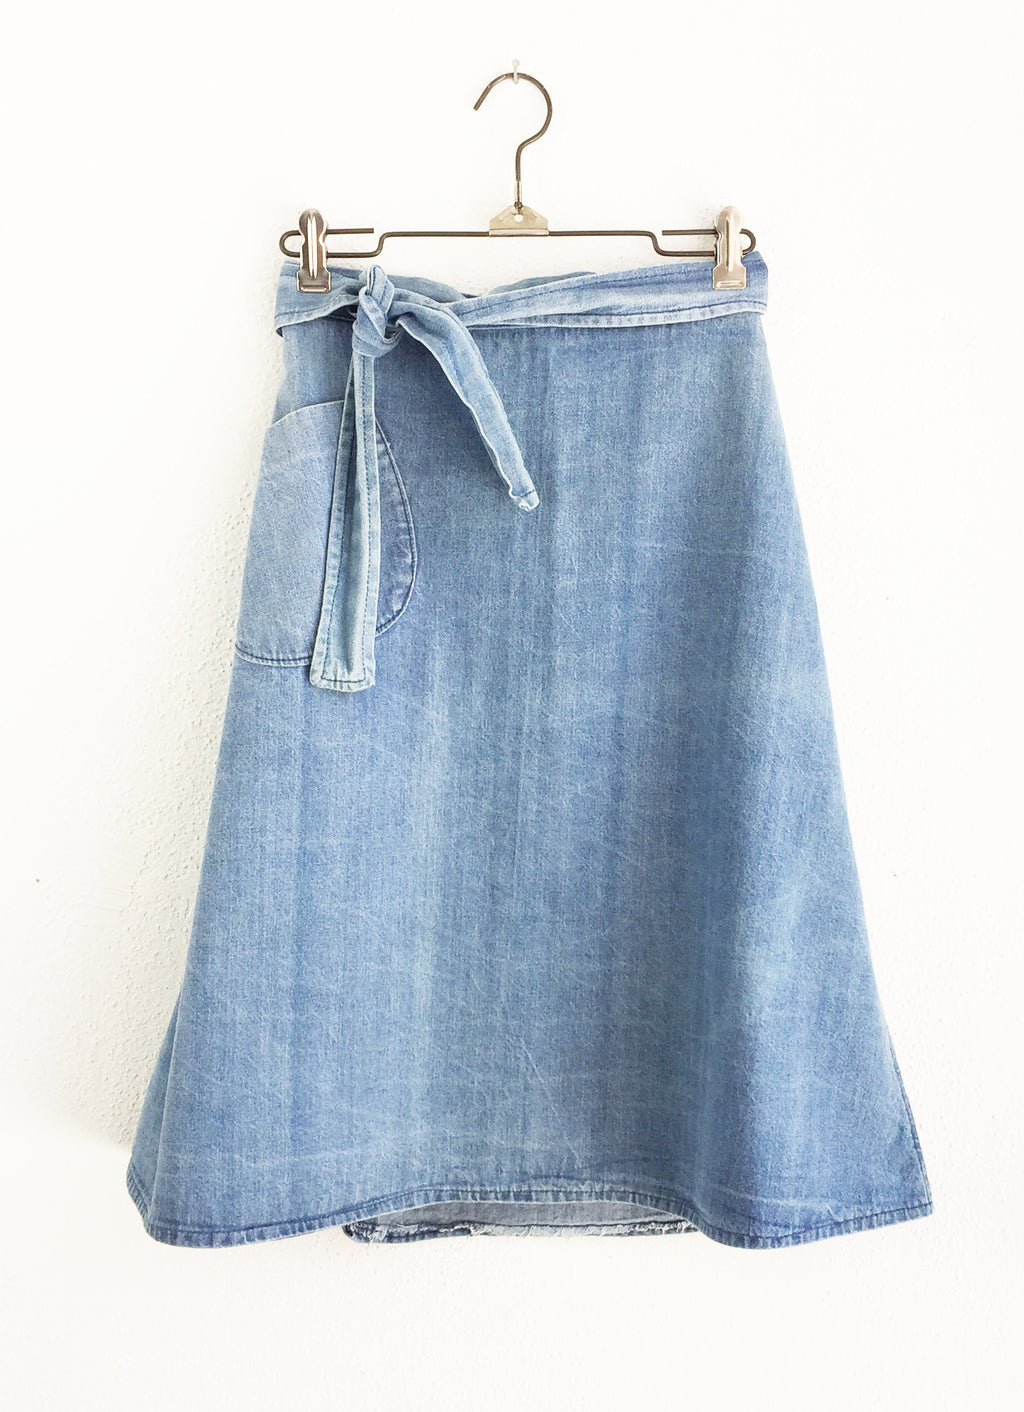 Vintage Denim Wrap Skirt size XS/Small